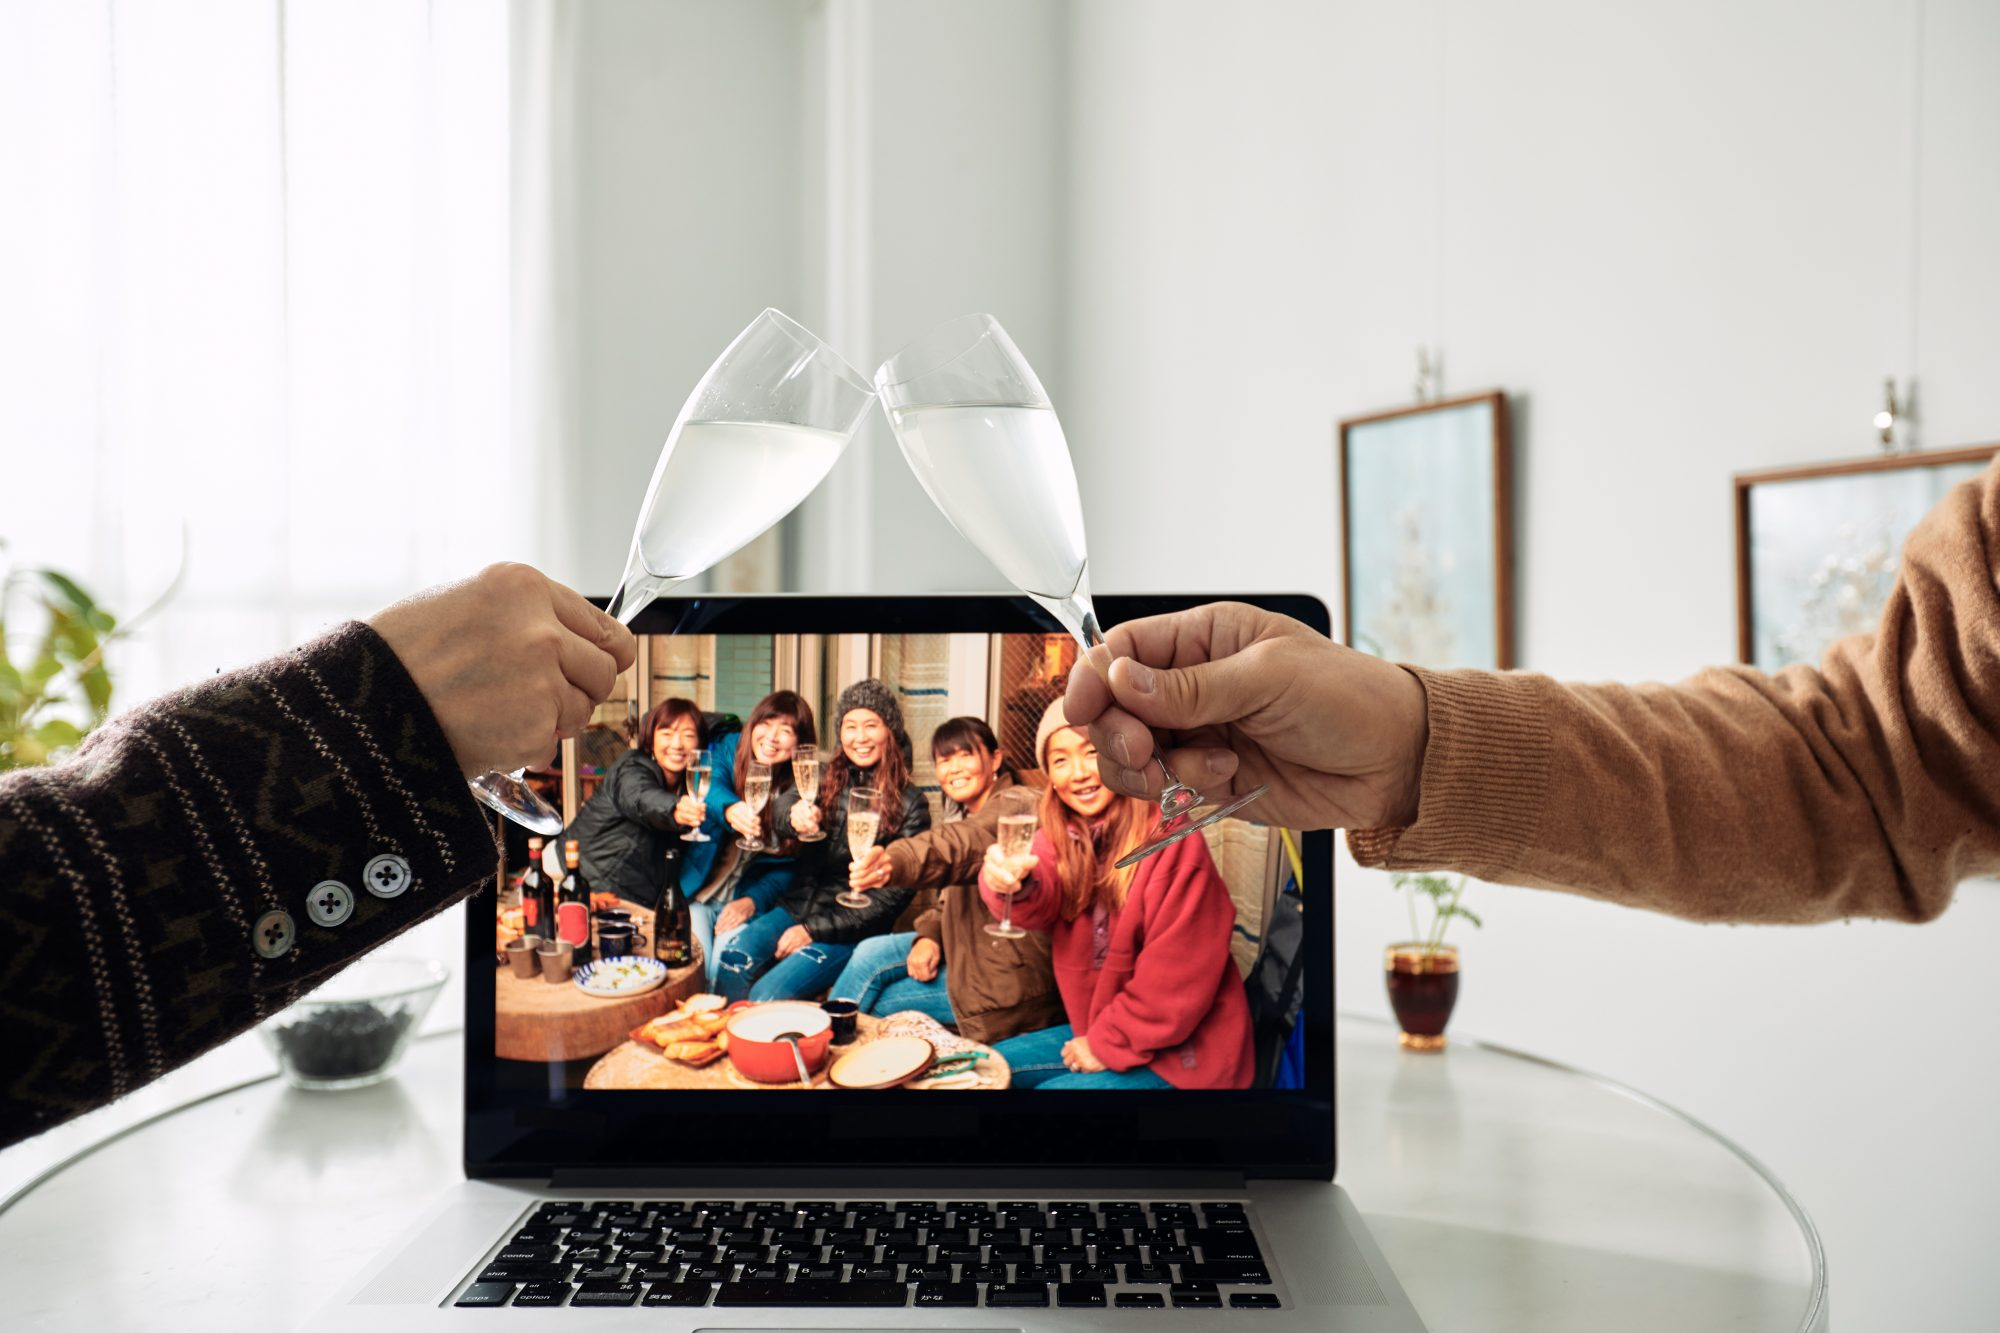 Seniors toasting with glasses at a virtual holiday party with family